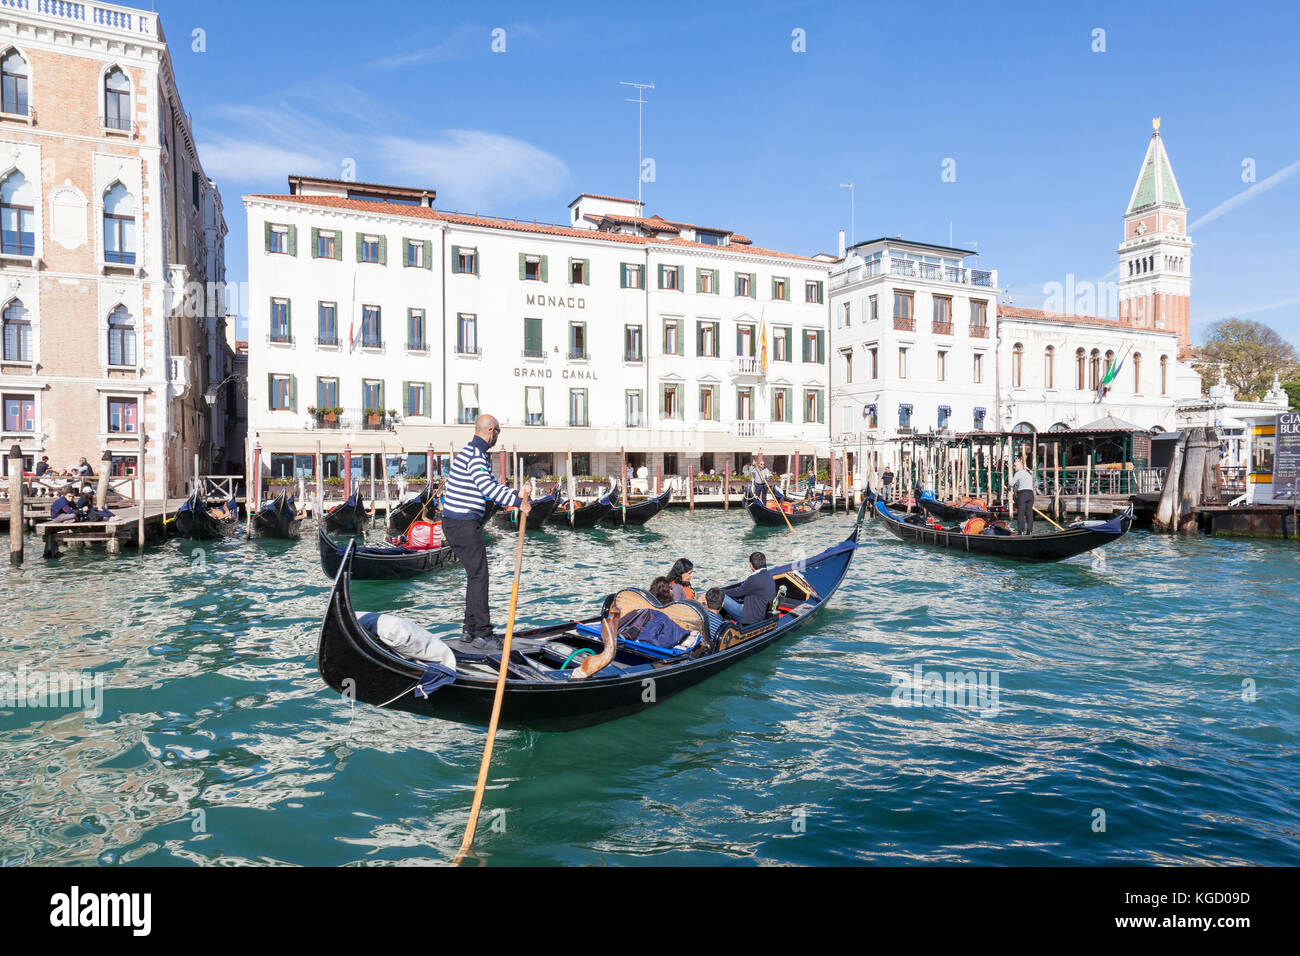 Gondolas with tourists on the Grand Canal, Venice, Italy queuing up to offload their customers at San Marco. Close - Stock Image